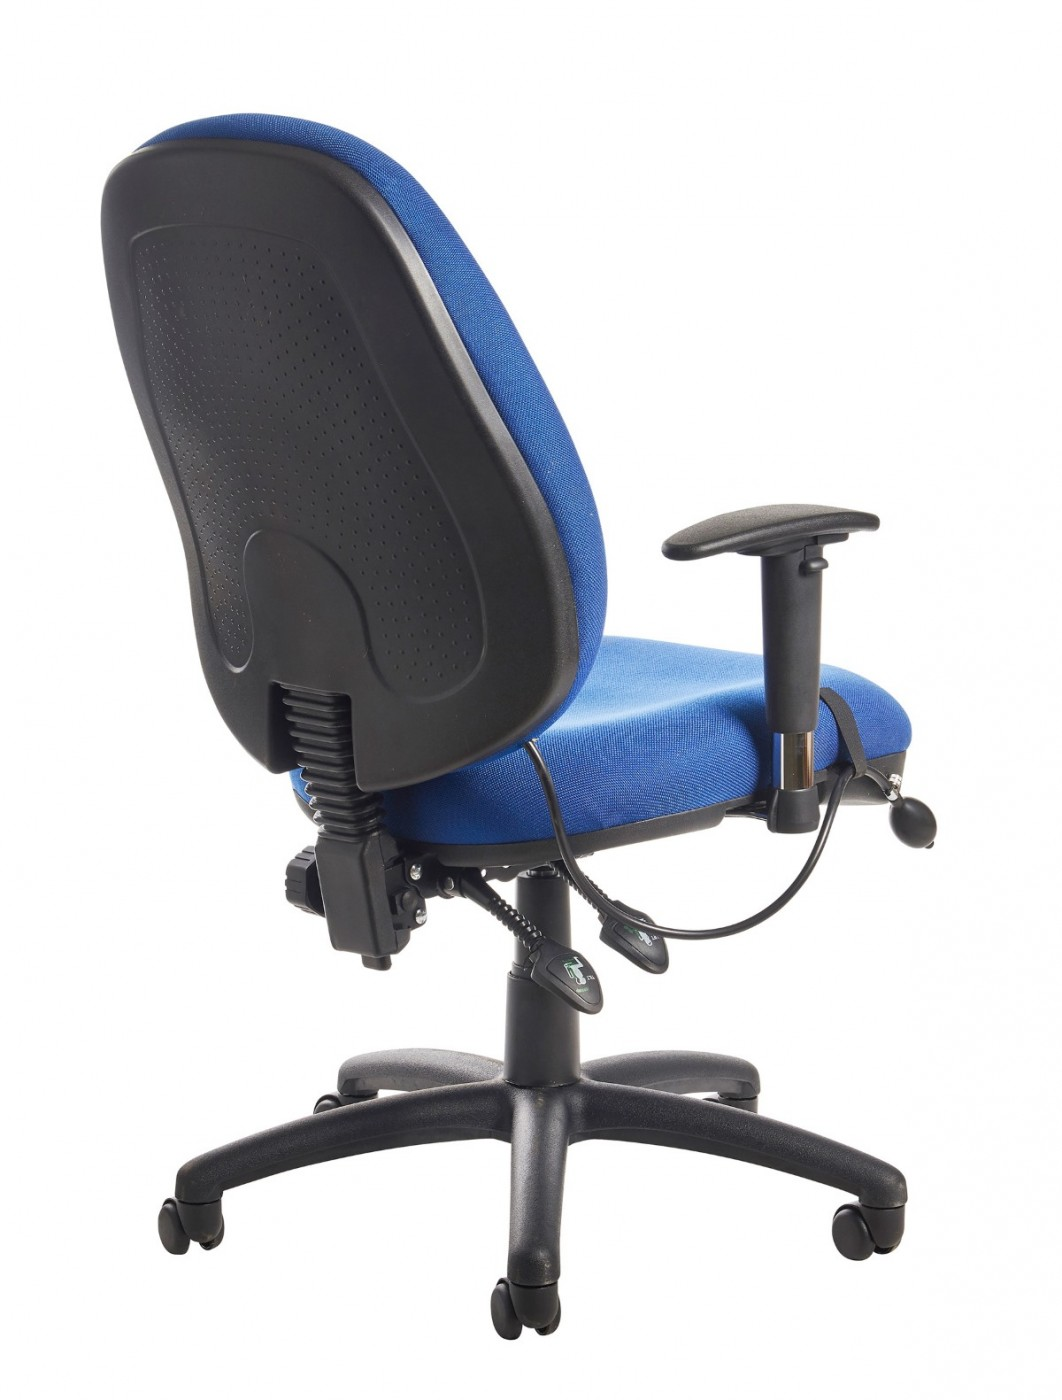 Sofia Chair Office Chairs Sofia Fabric Office Chair Sof300t1 121